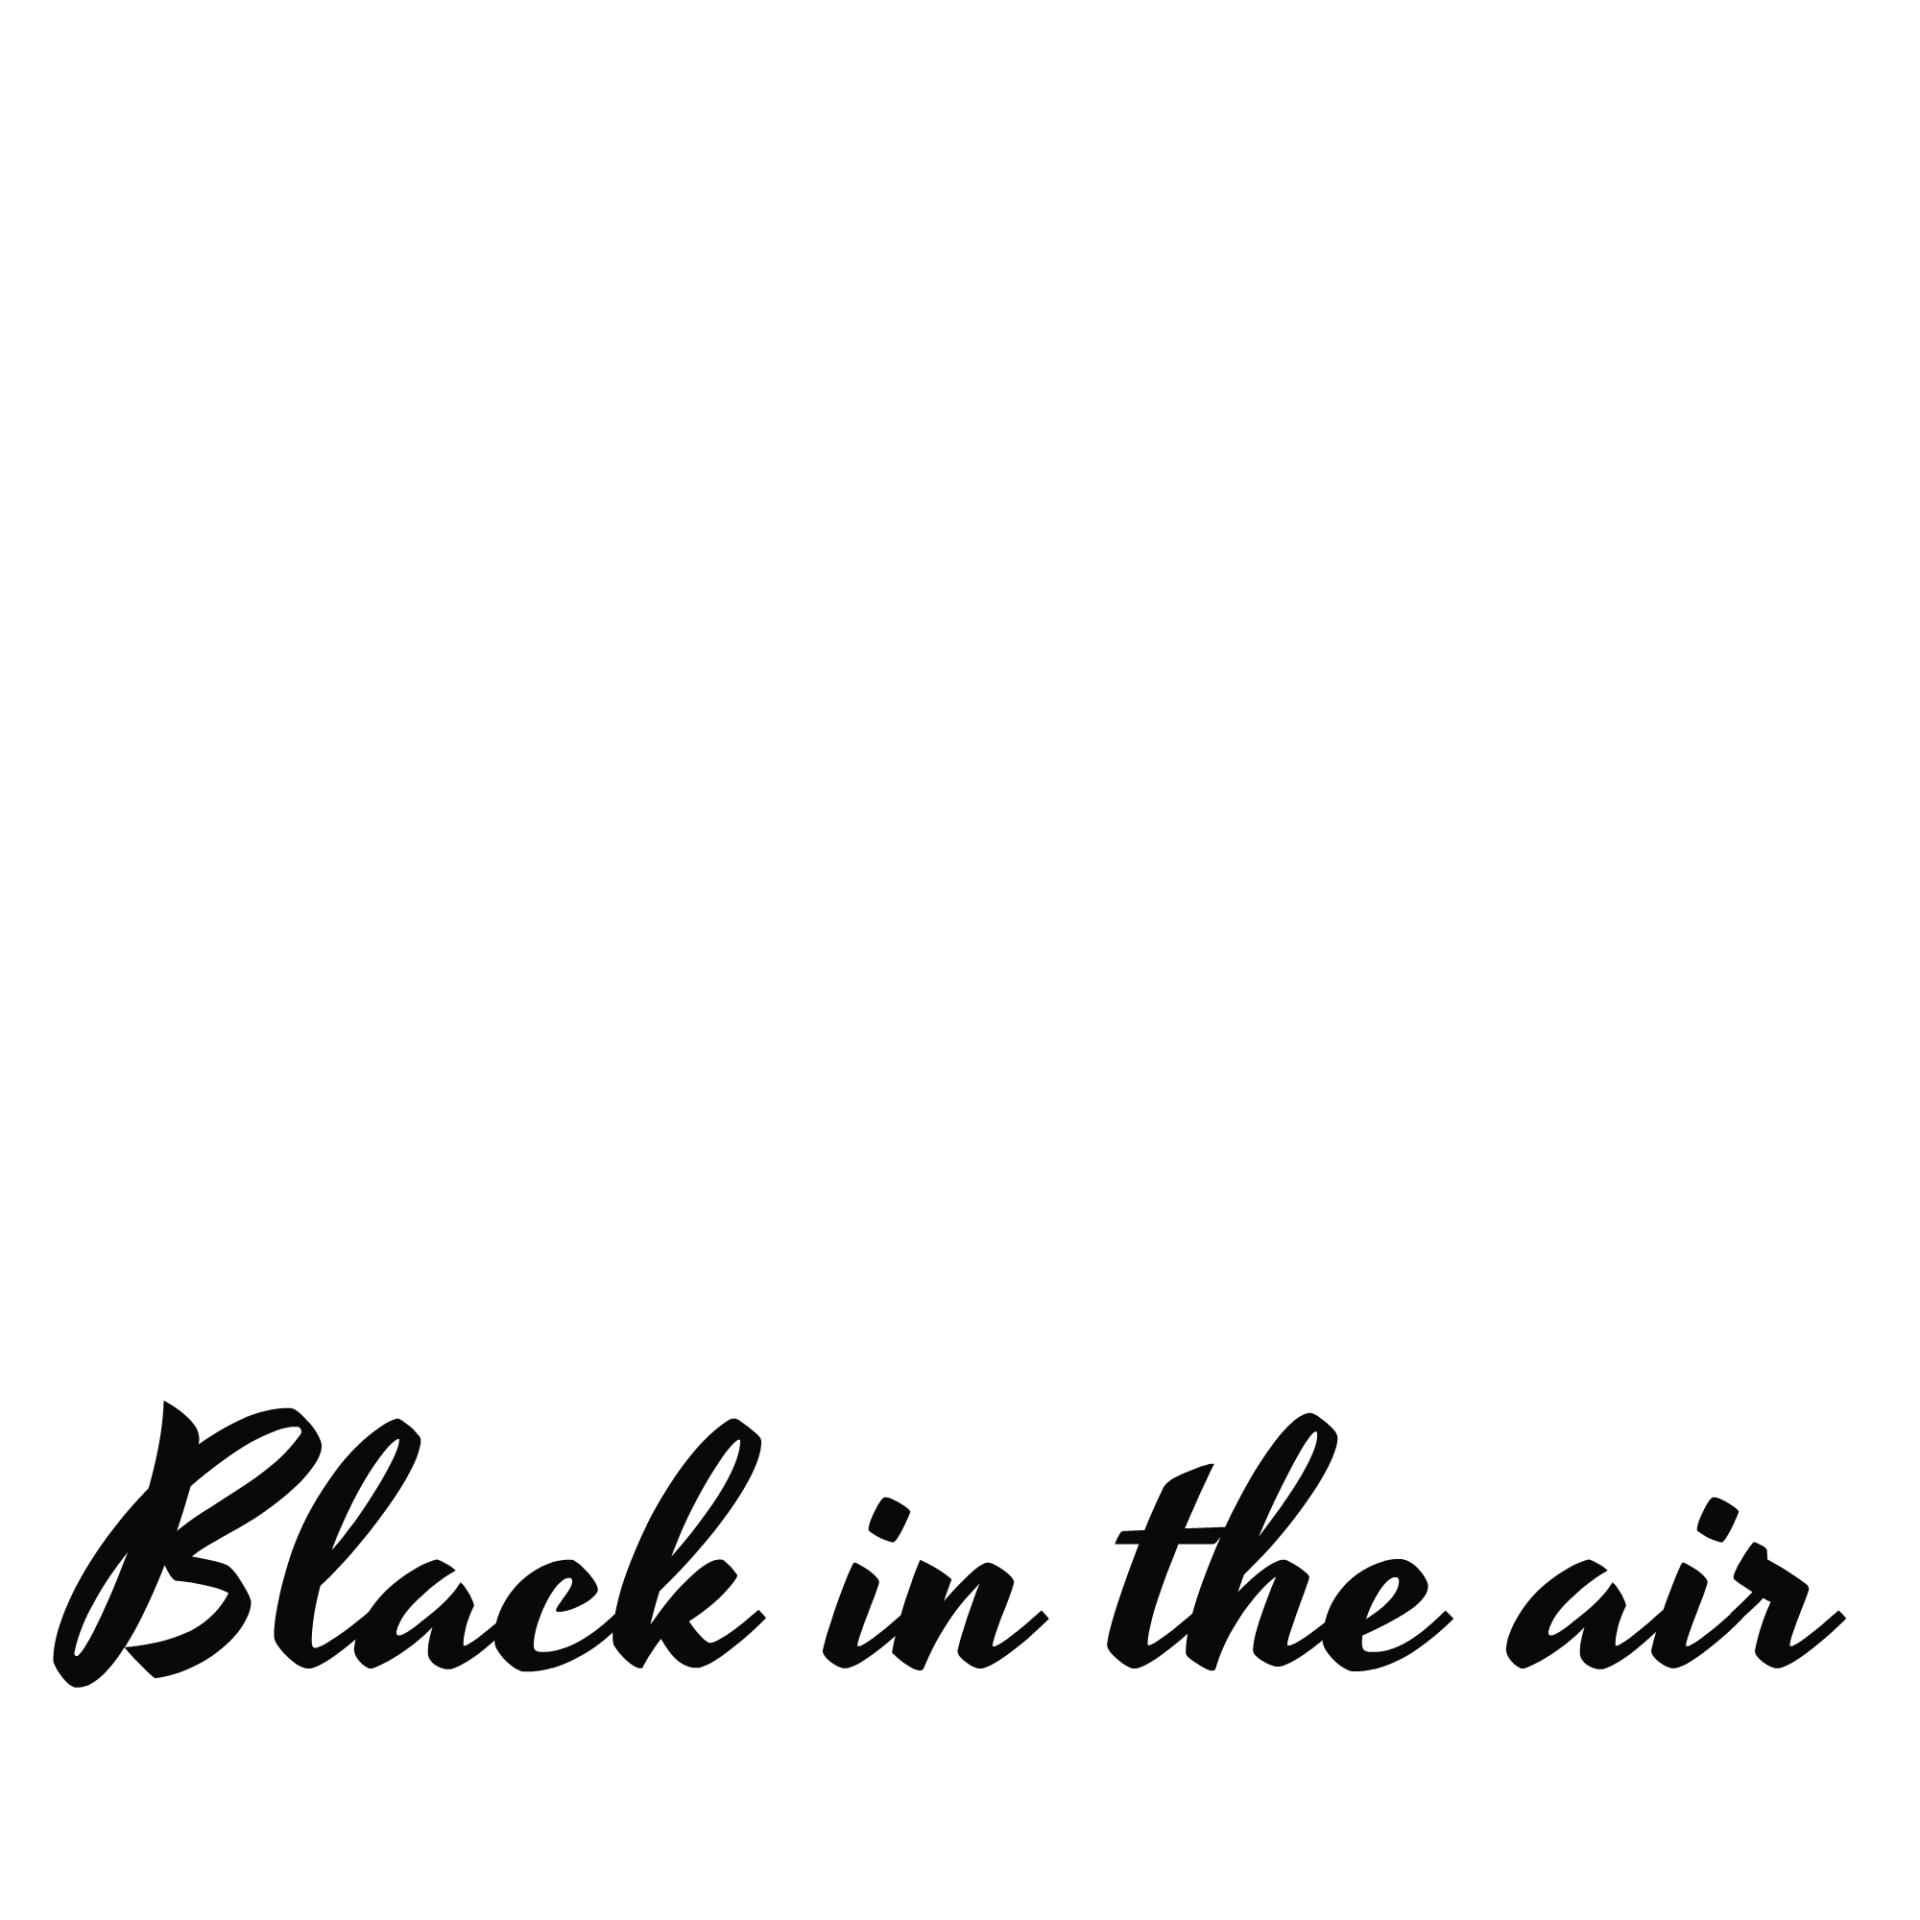 BLACKINTHEAIR